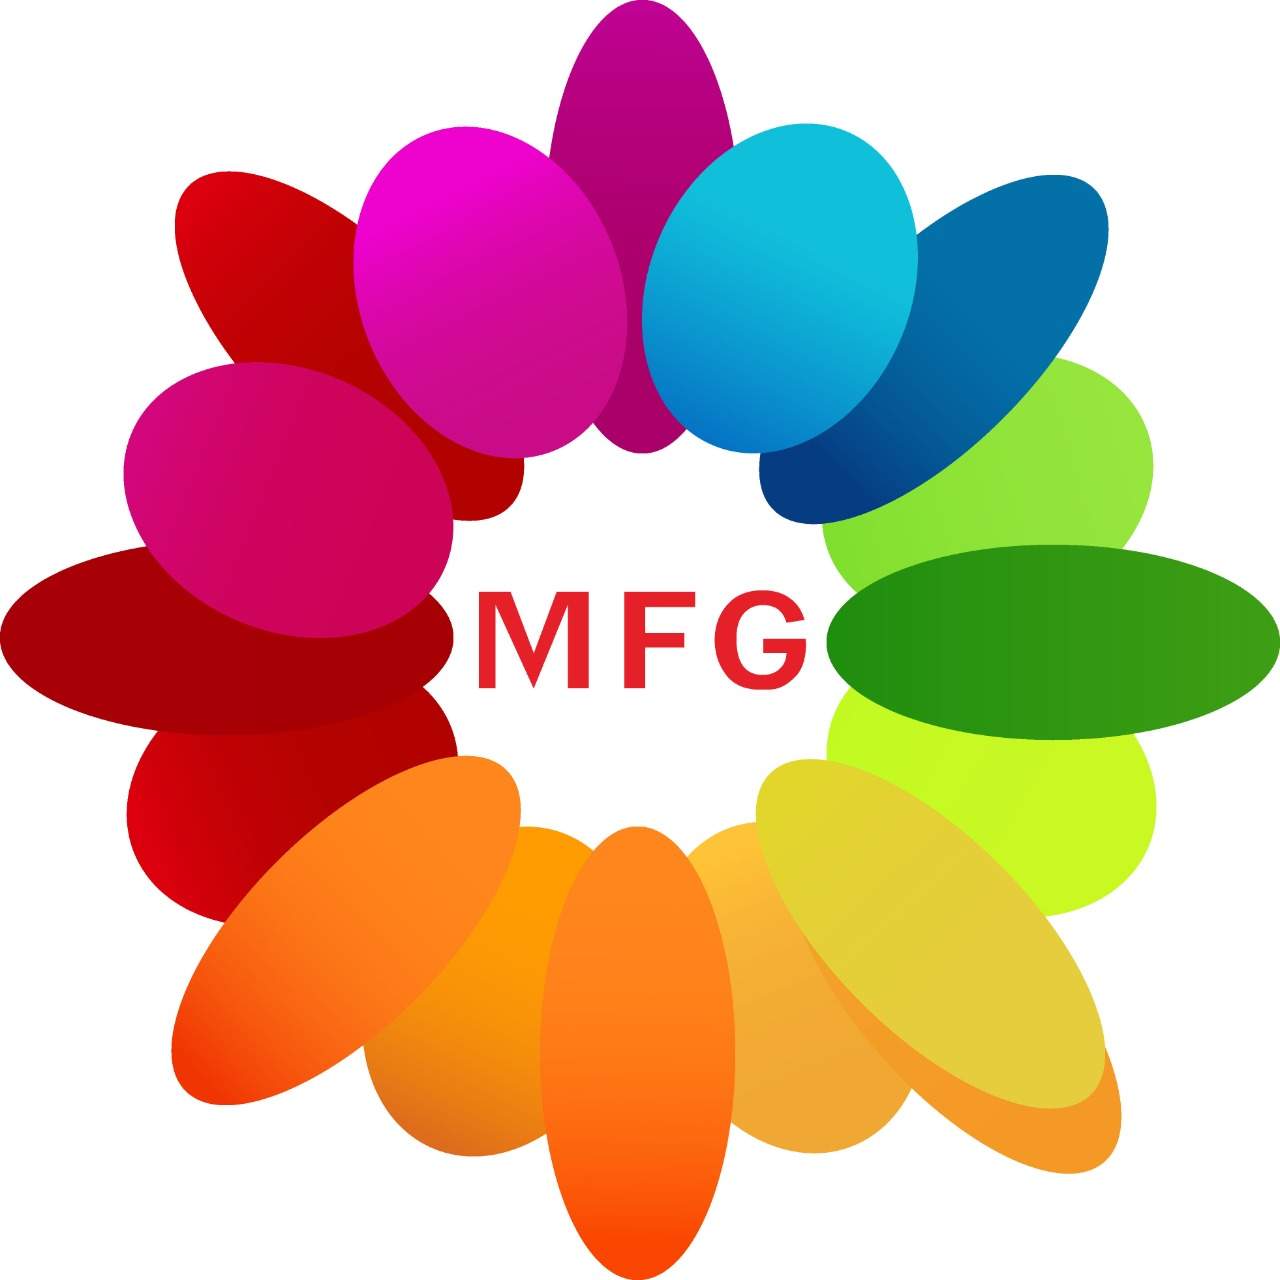 Bunch of 12 red roses with 12 kg Sohan papdi